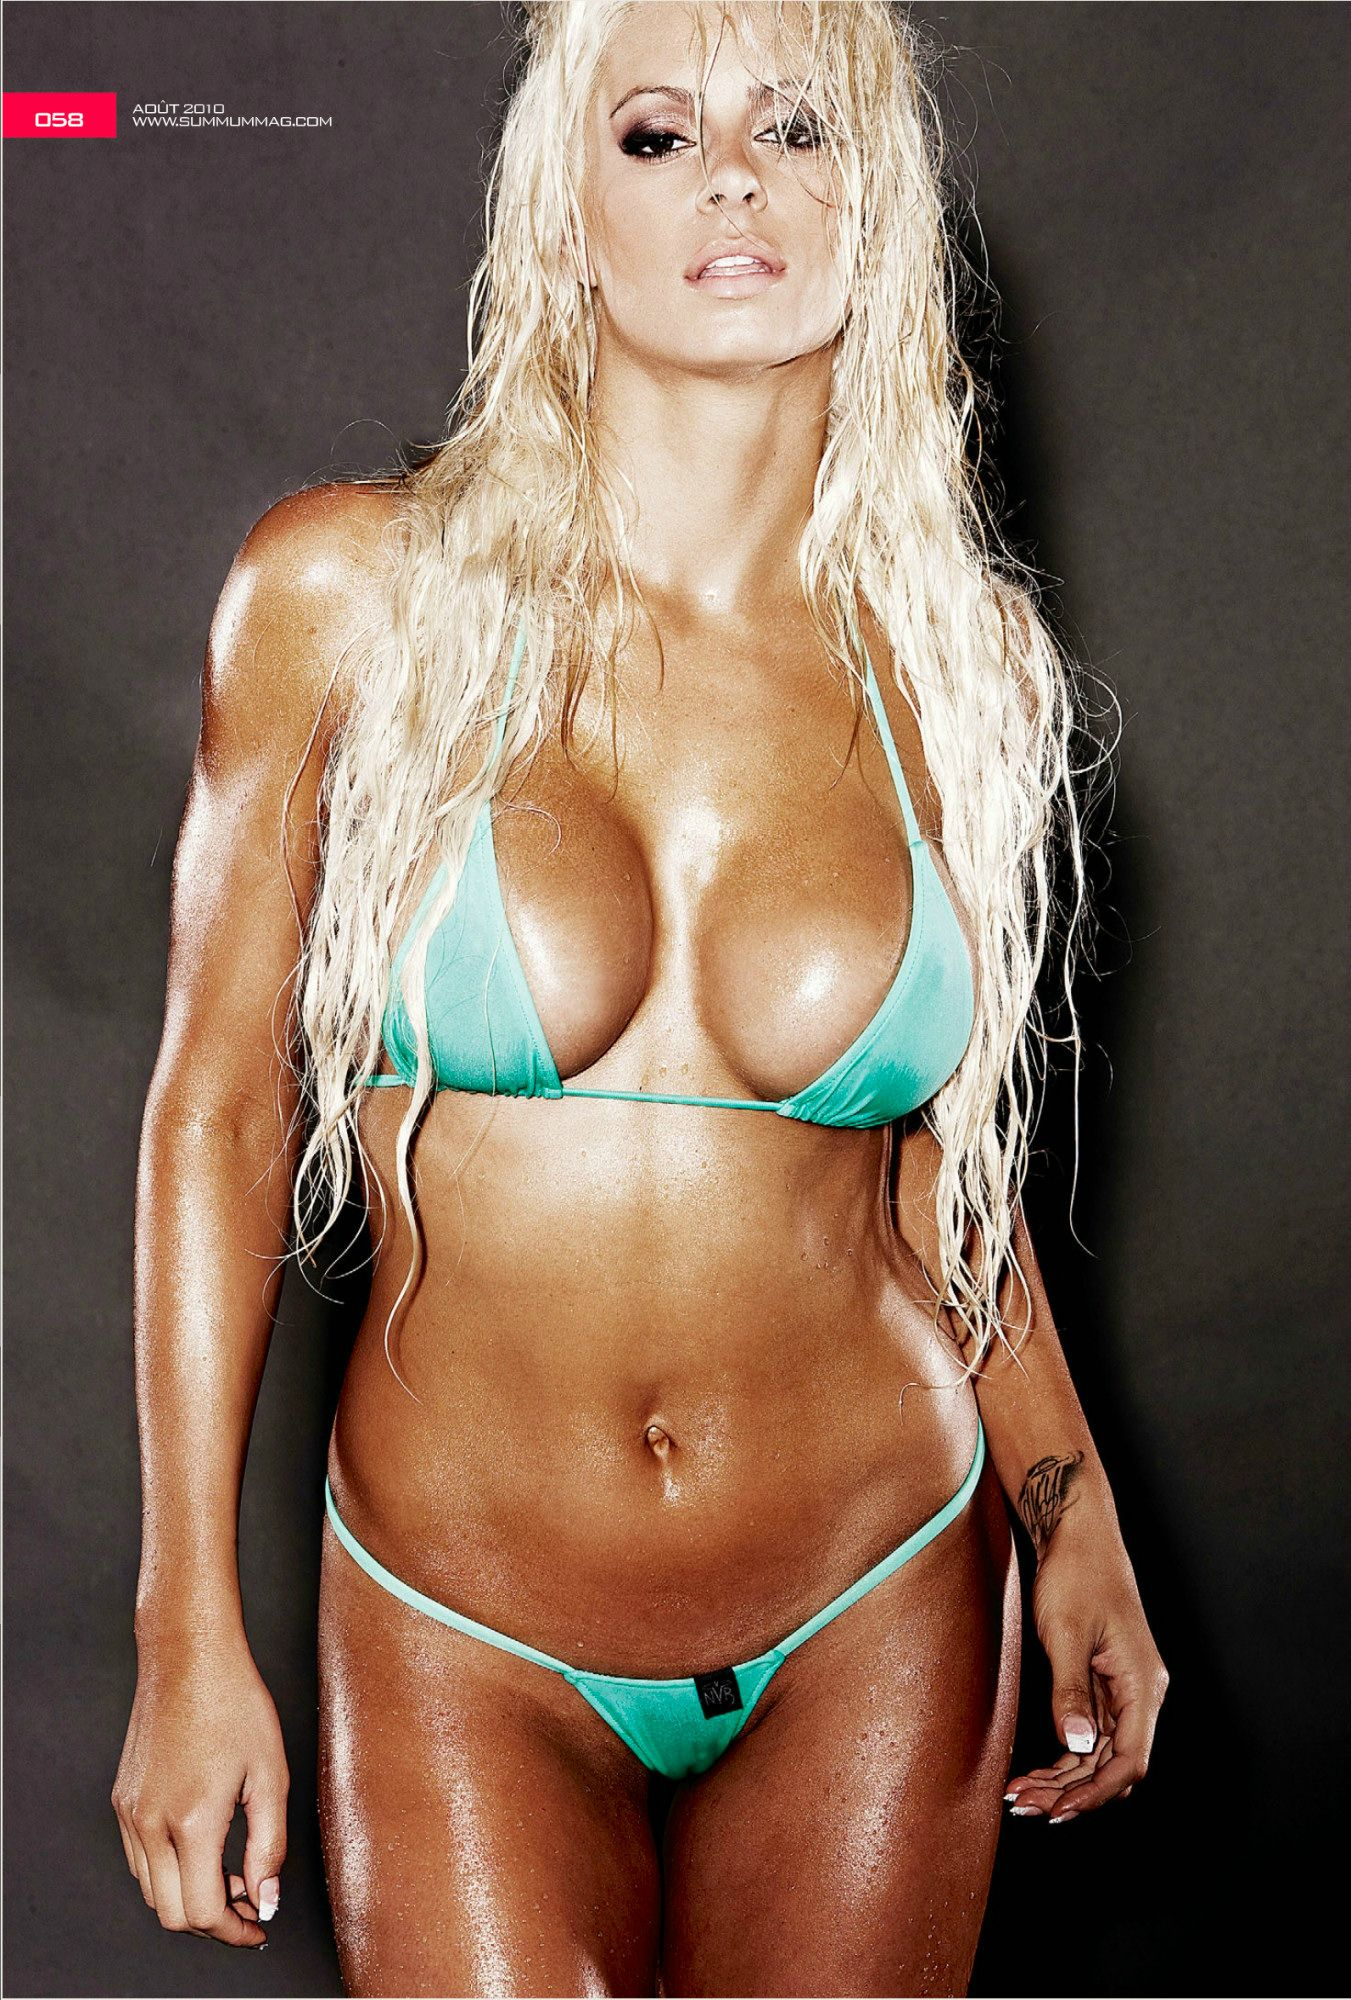 Maryse Ouellet Proves sexy pic